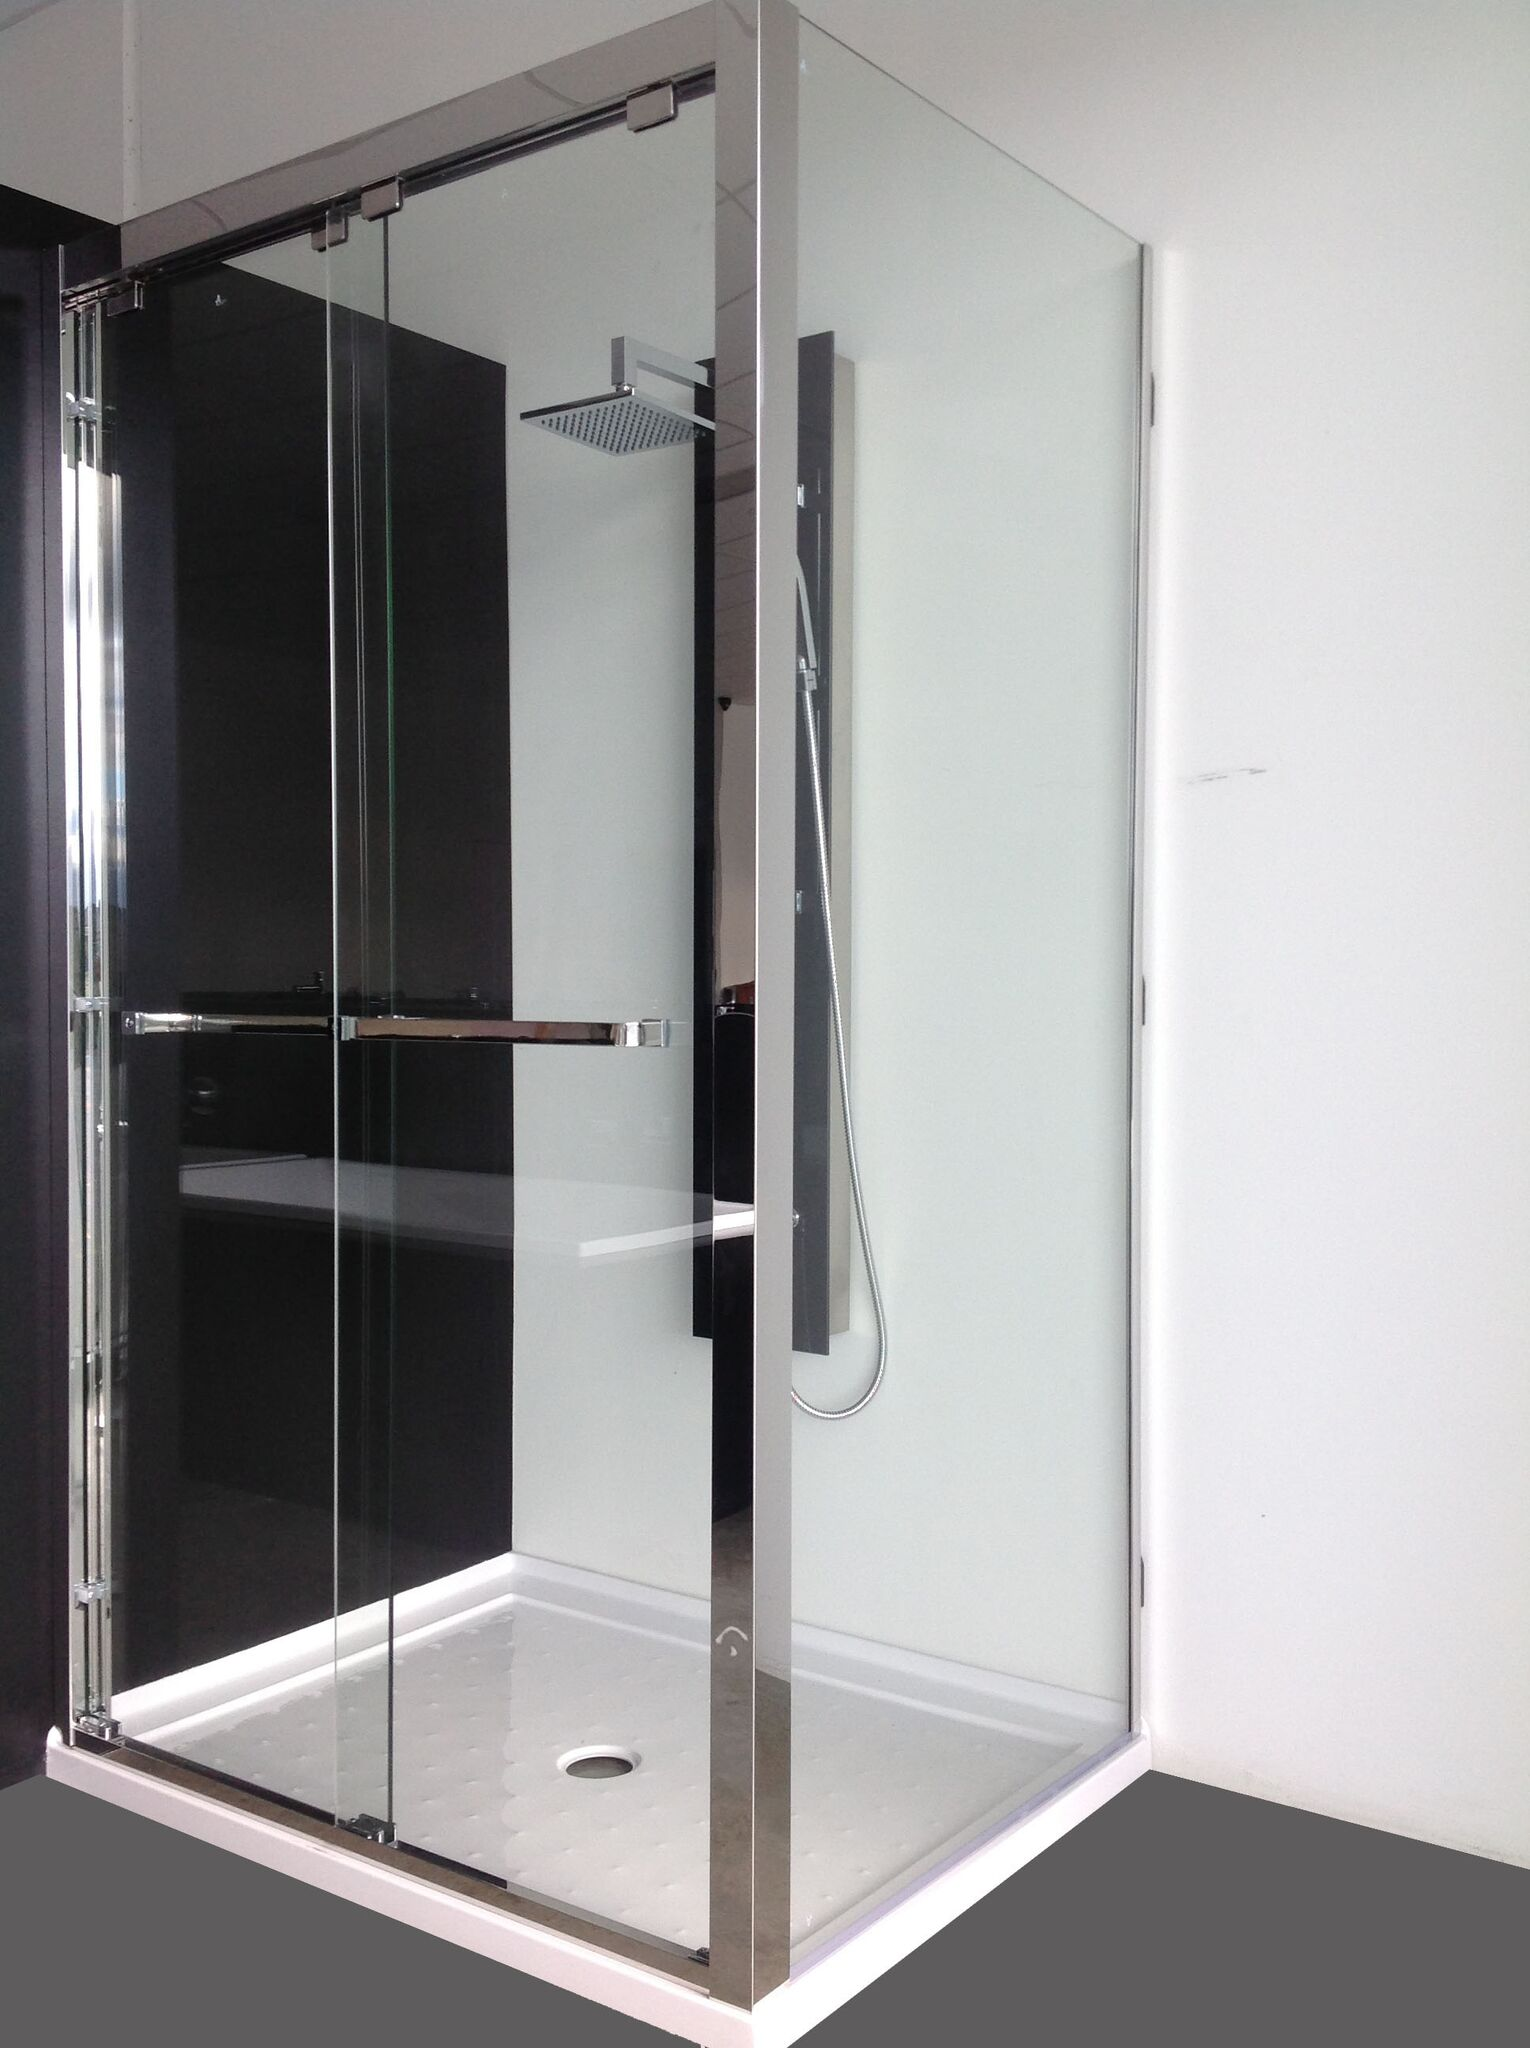 Stainless Steel Sliding Shower Screen Sanyc Bathroom